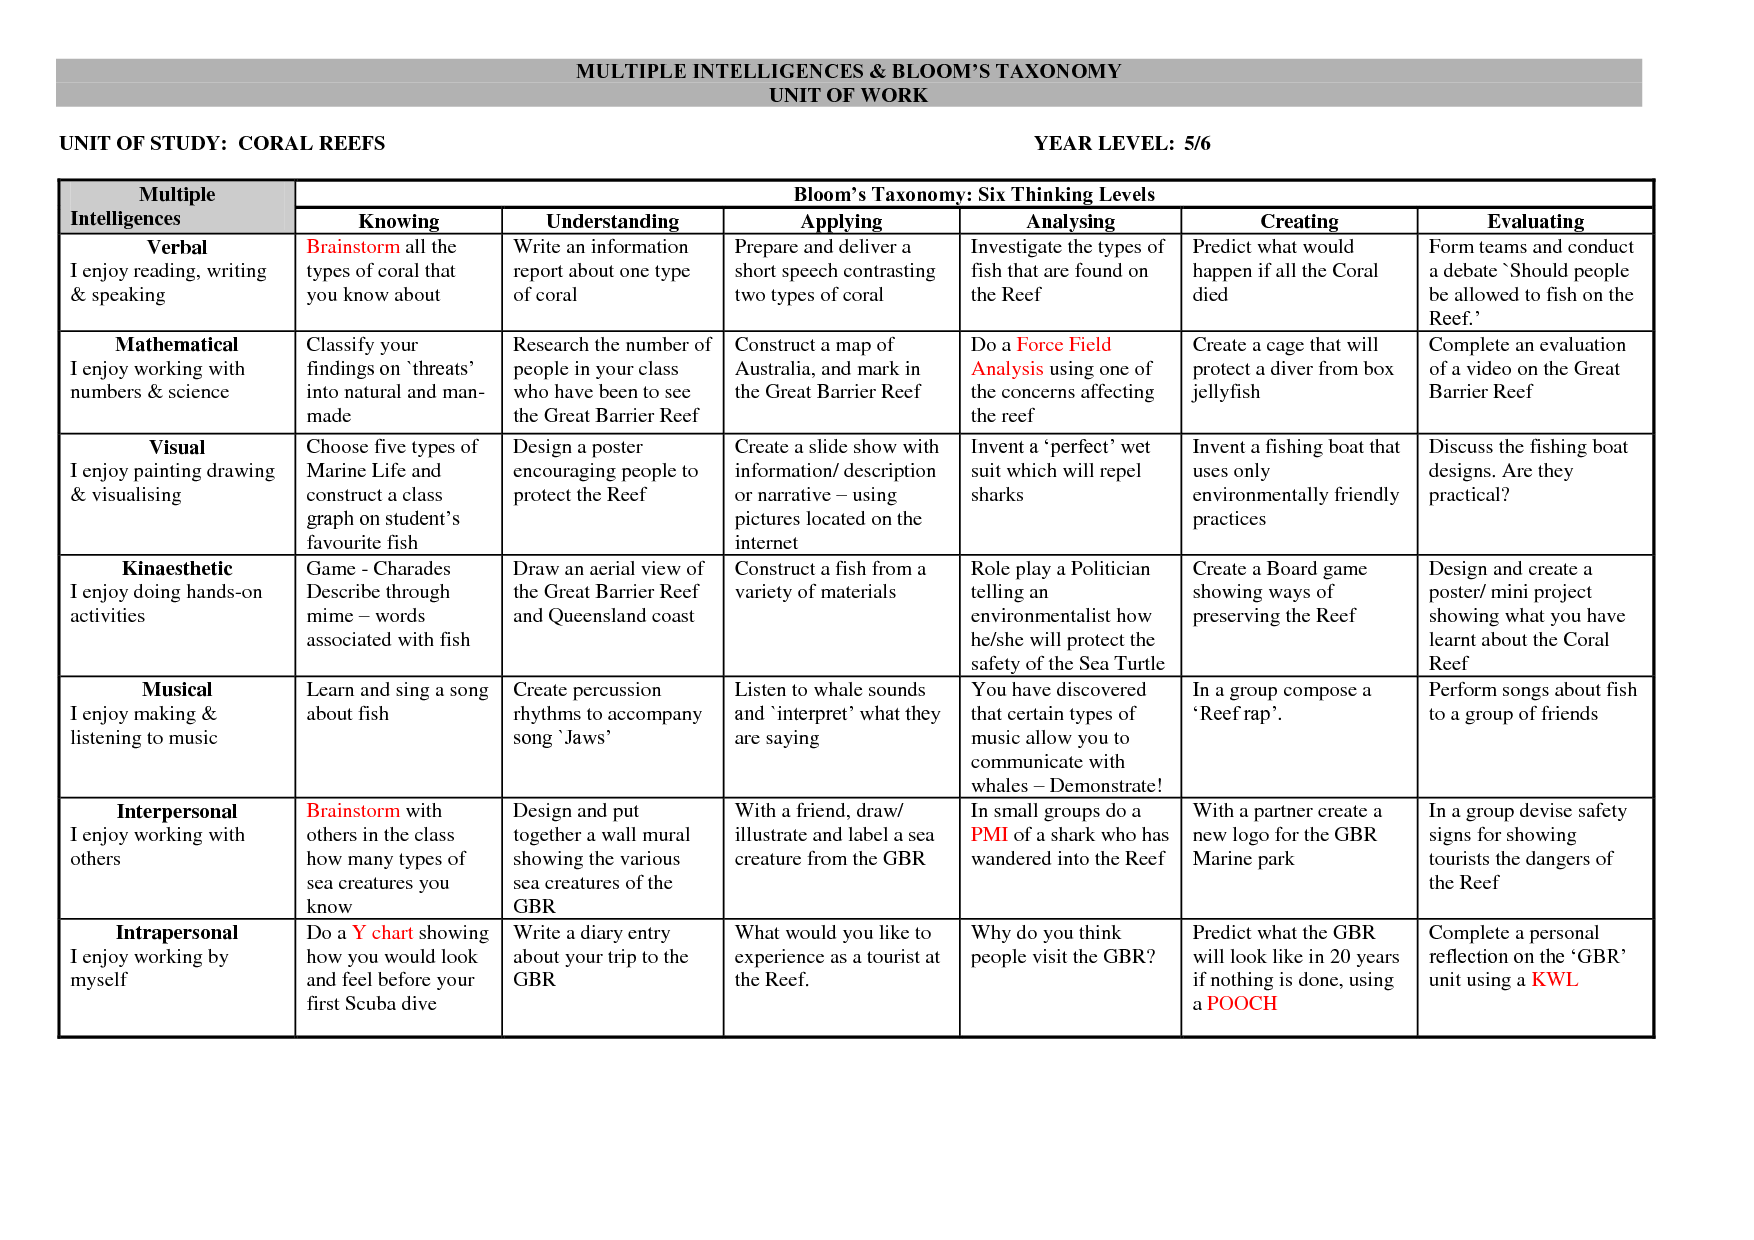 Assignment Grid For A Coral Reef Unit Grades 5 Amp 6 Combines Multiple Intelligences With Bloom